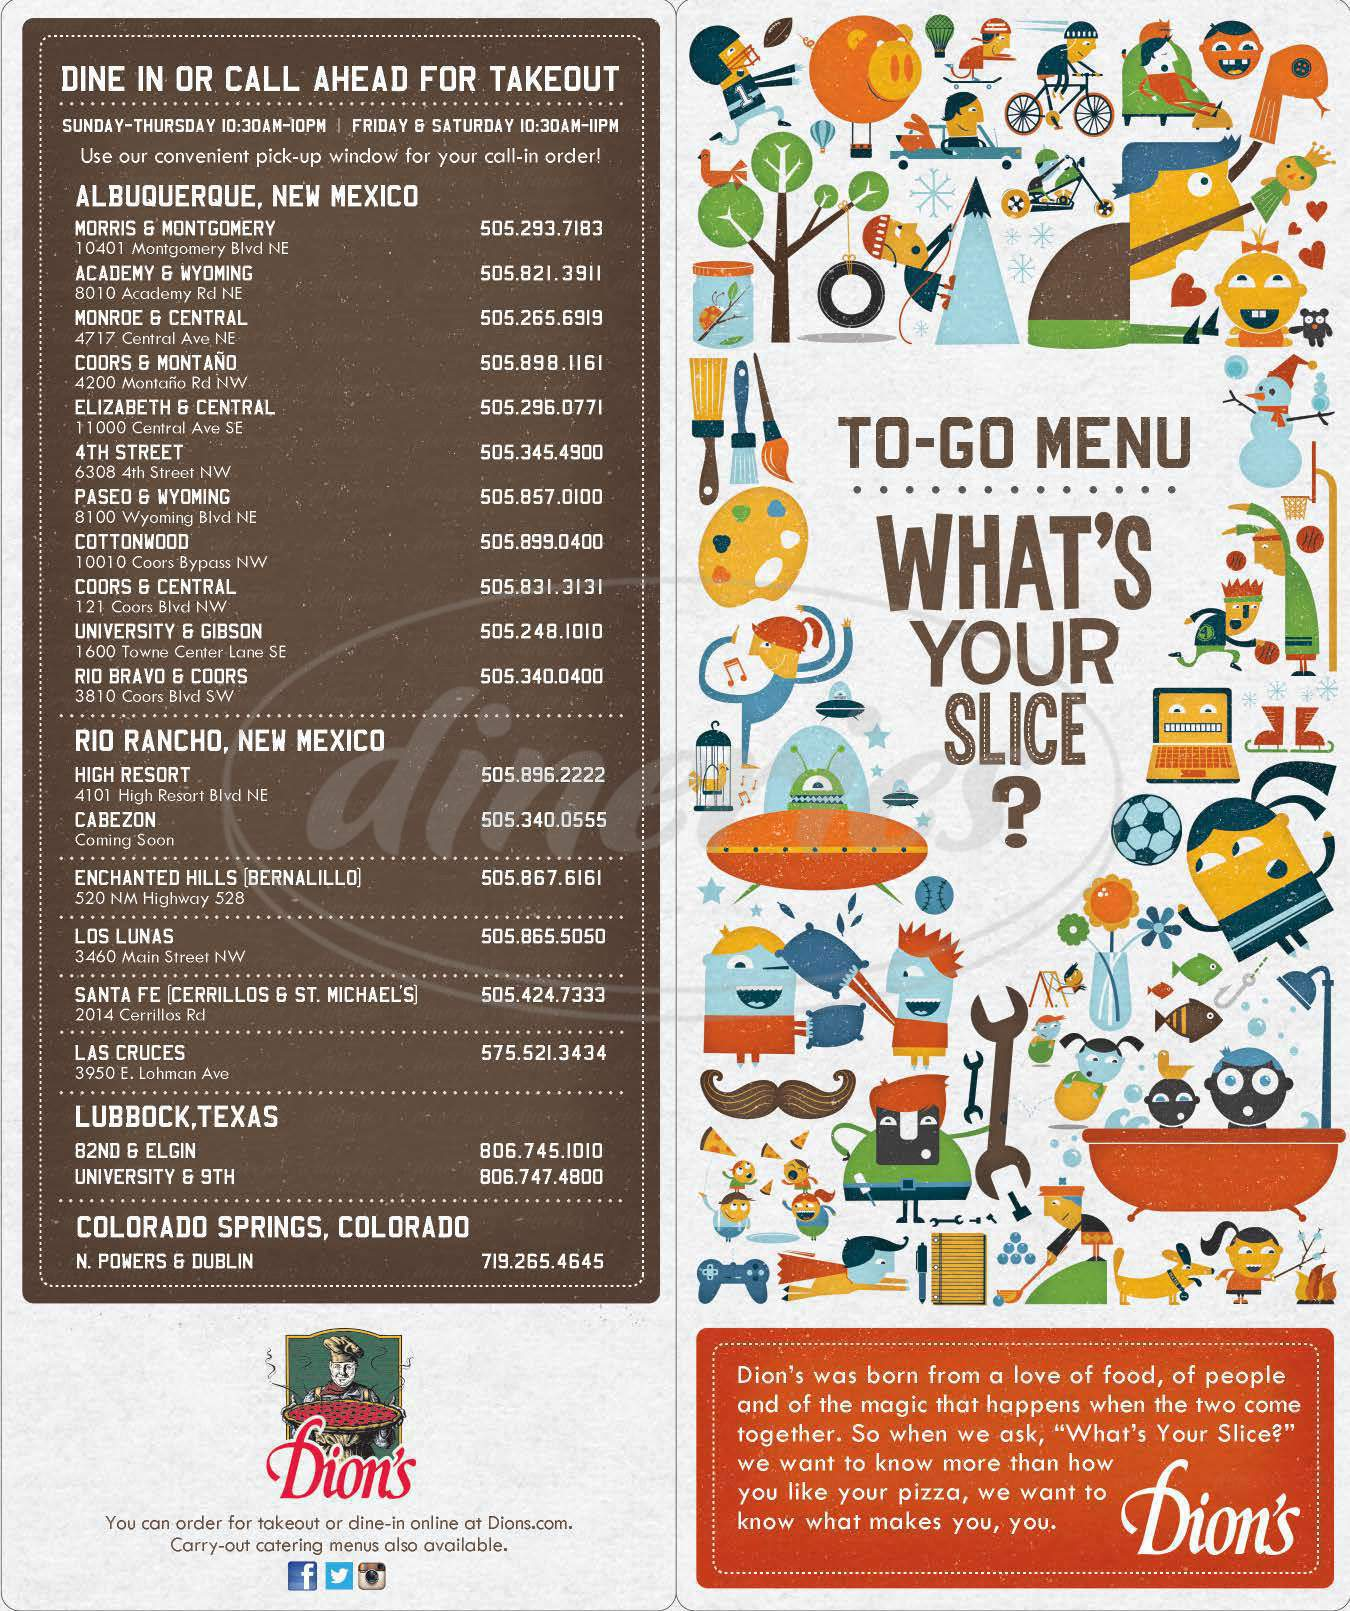 menu for Dion's